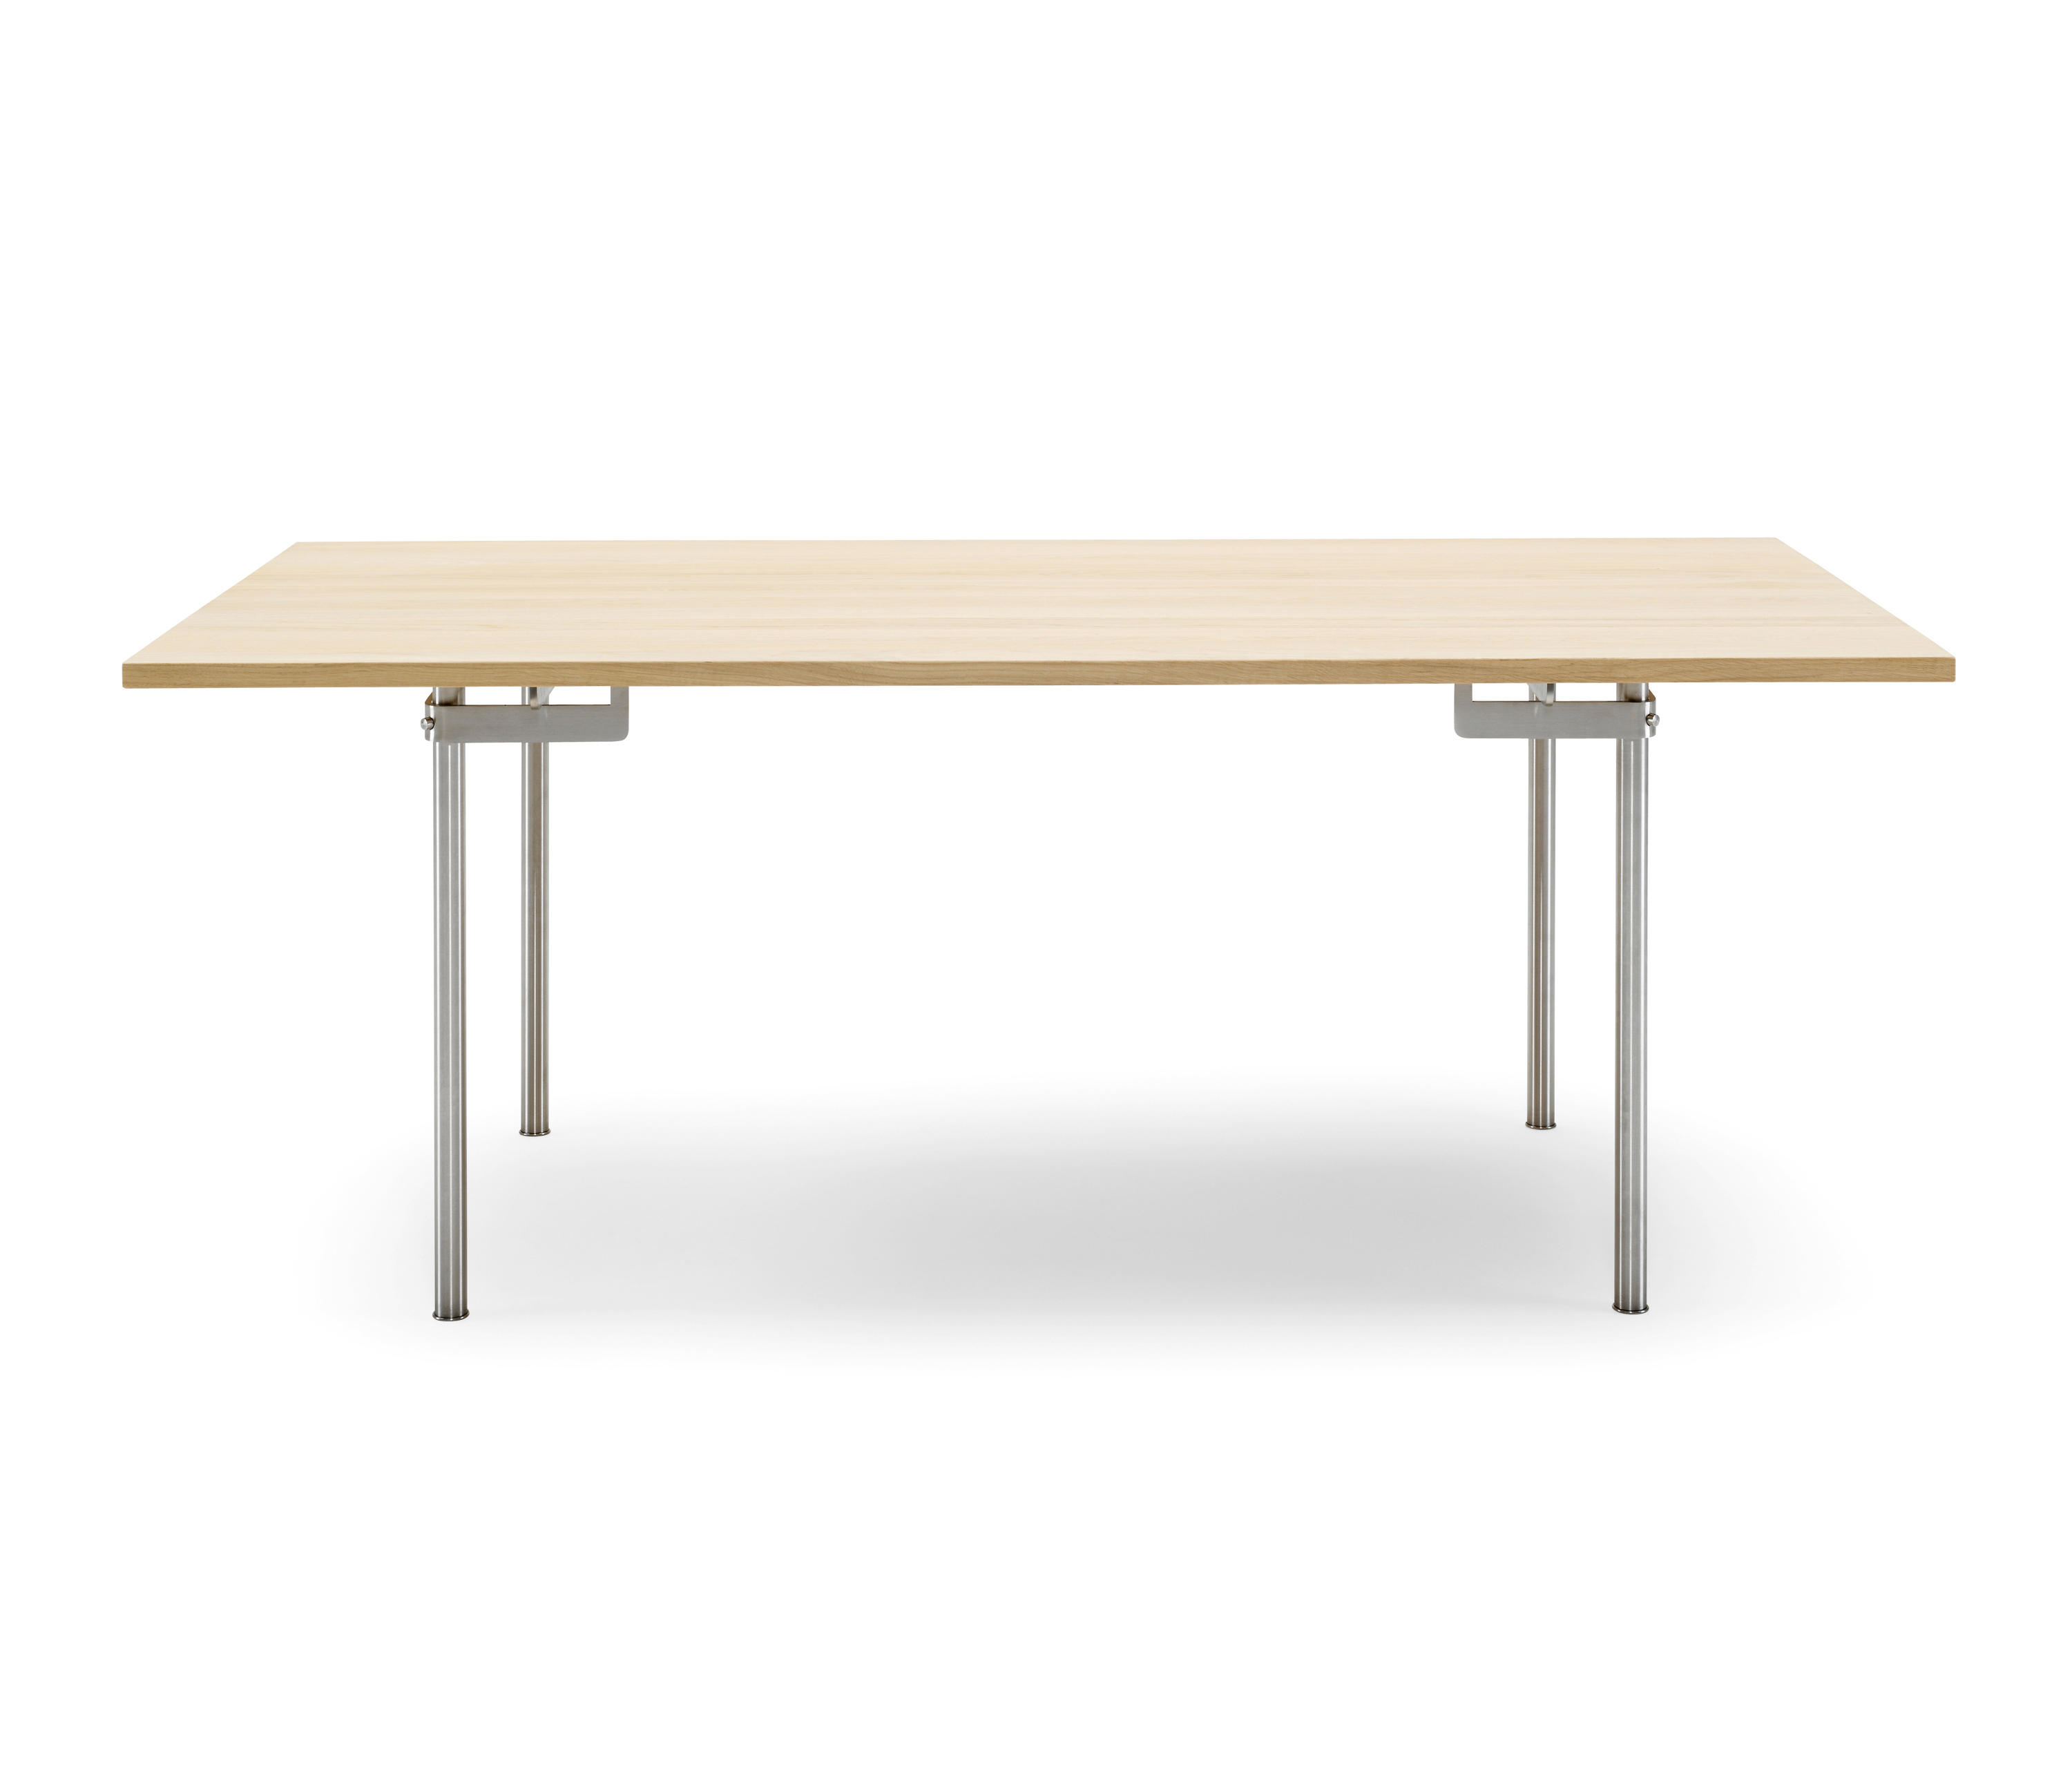 CH318 Individual desks from Carl Hansen & S¸n